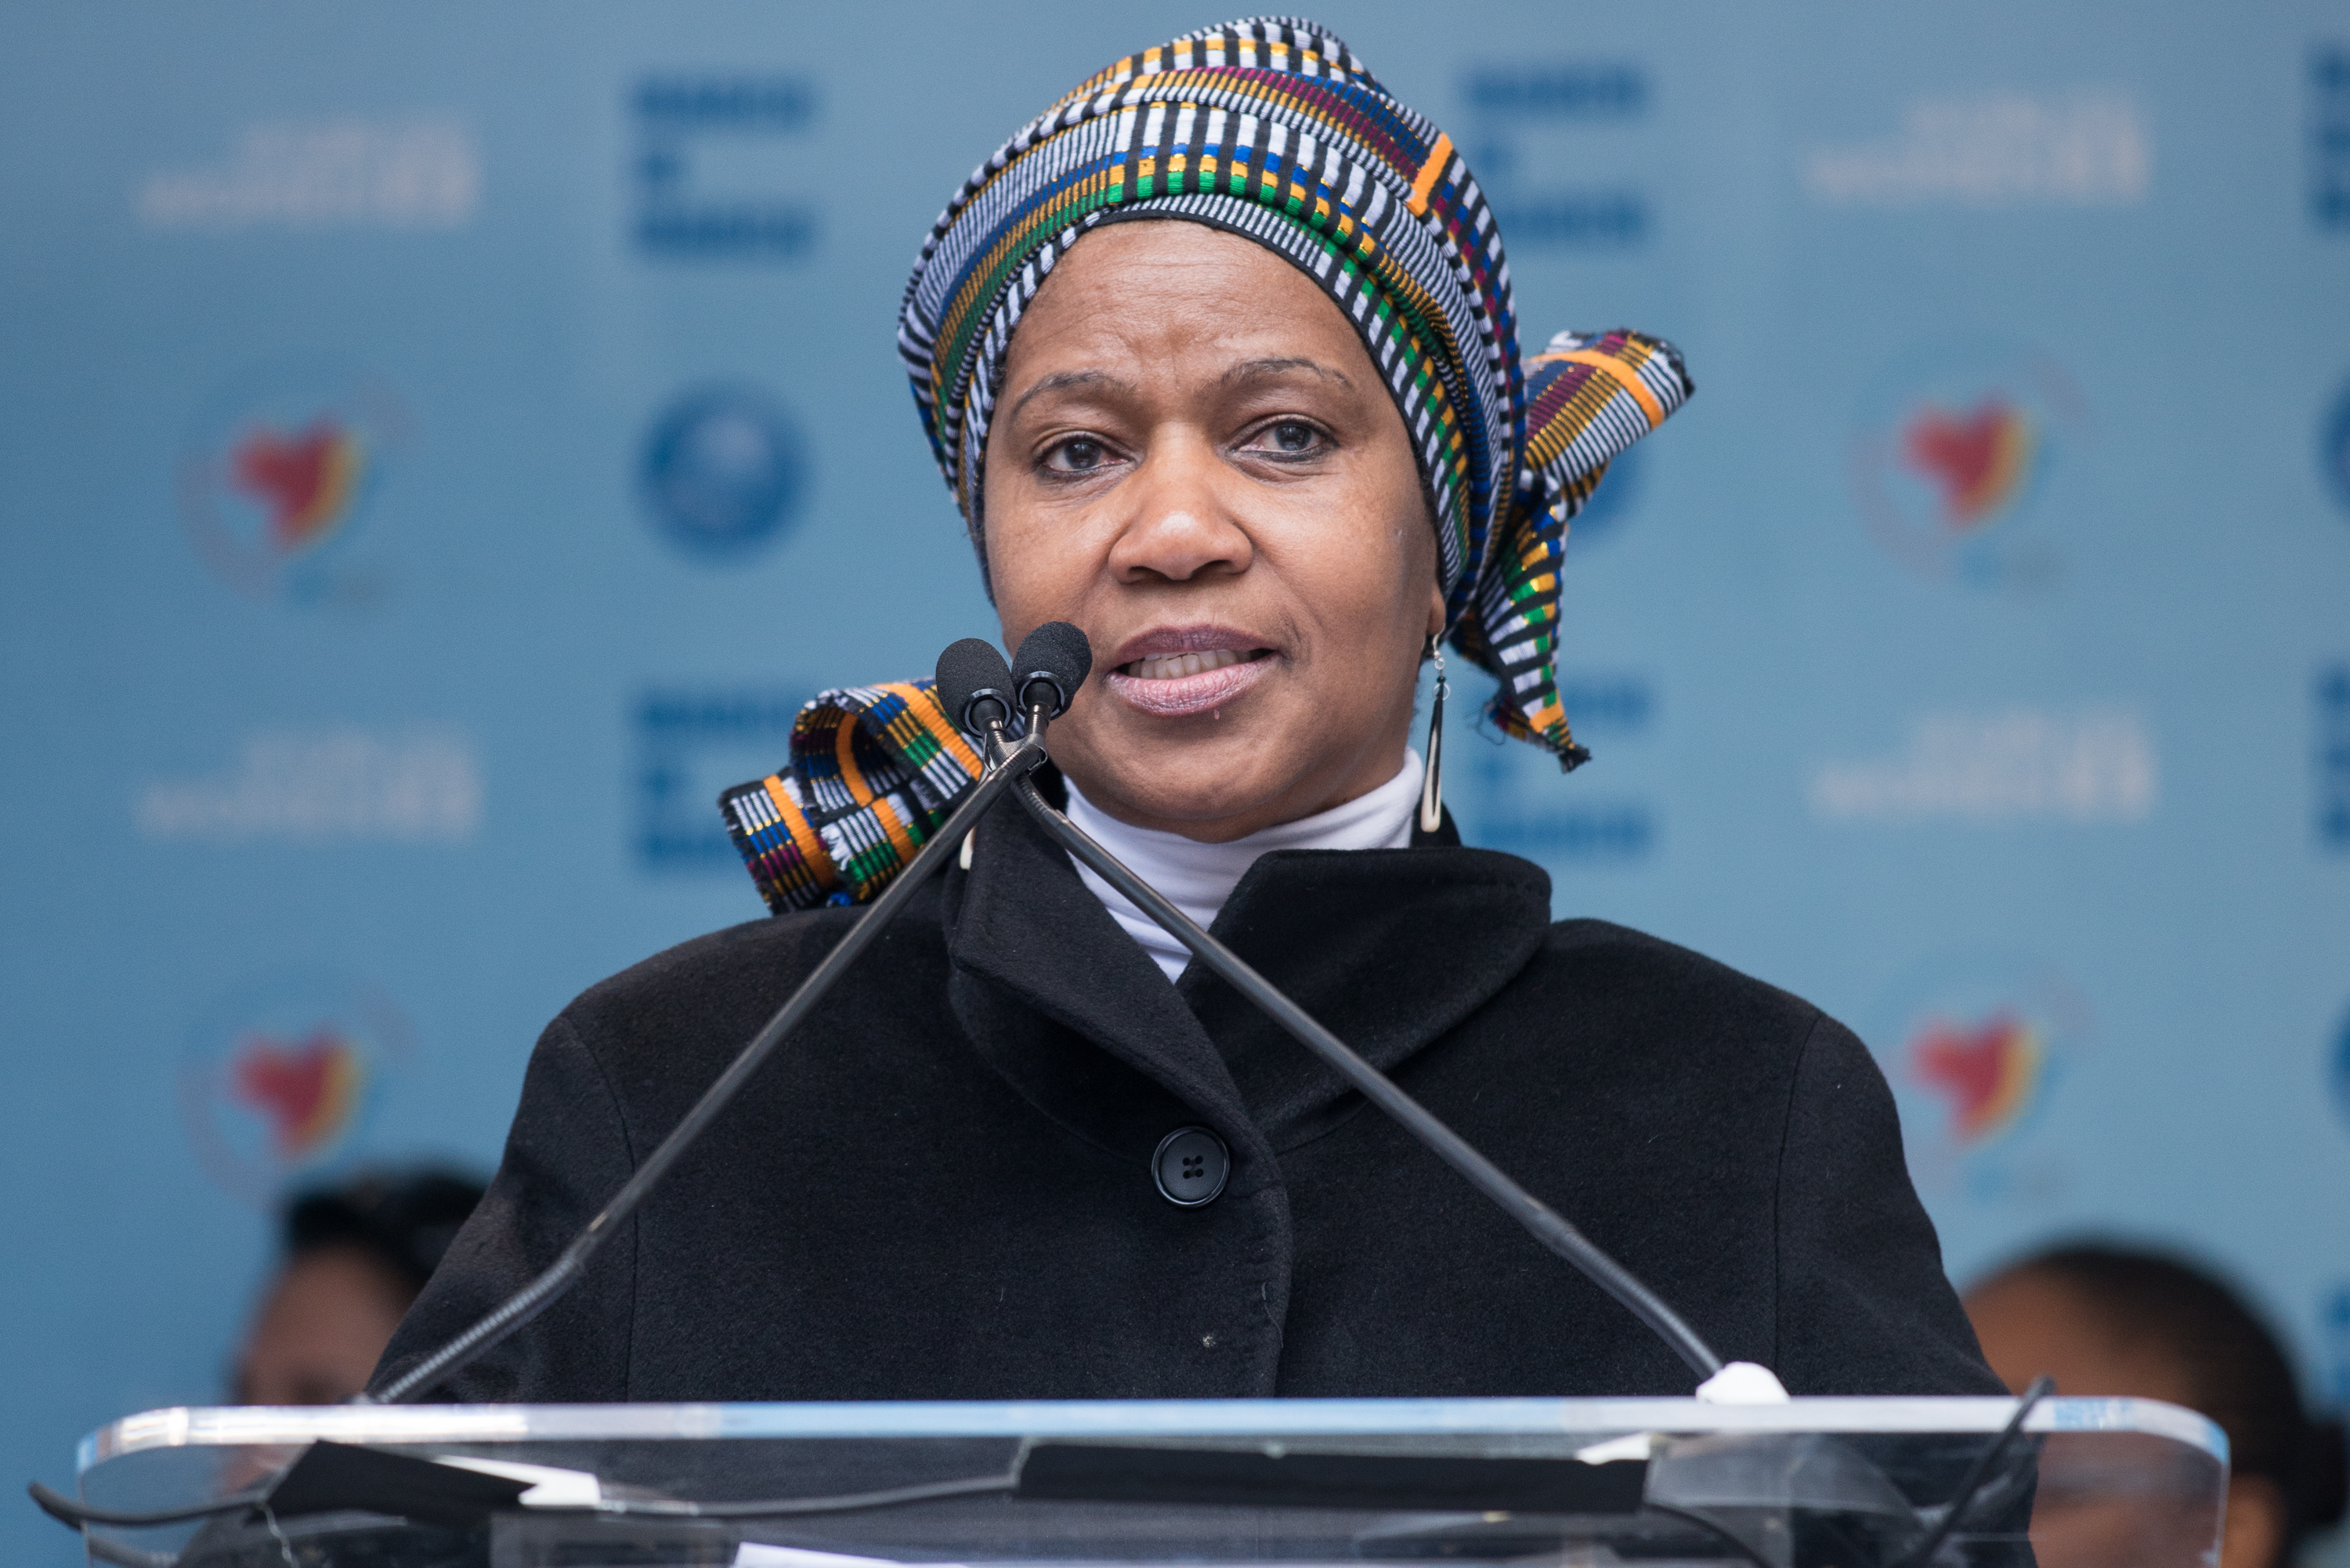 Assistant Secretary General Phumzile Mlambo-Ngcuka in New York City, on March 8, 2015.